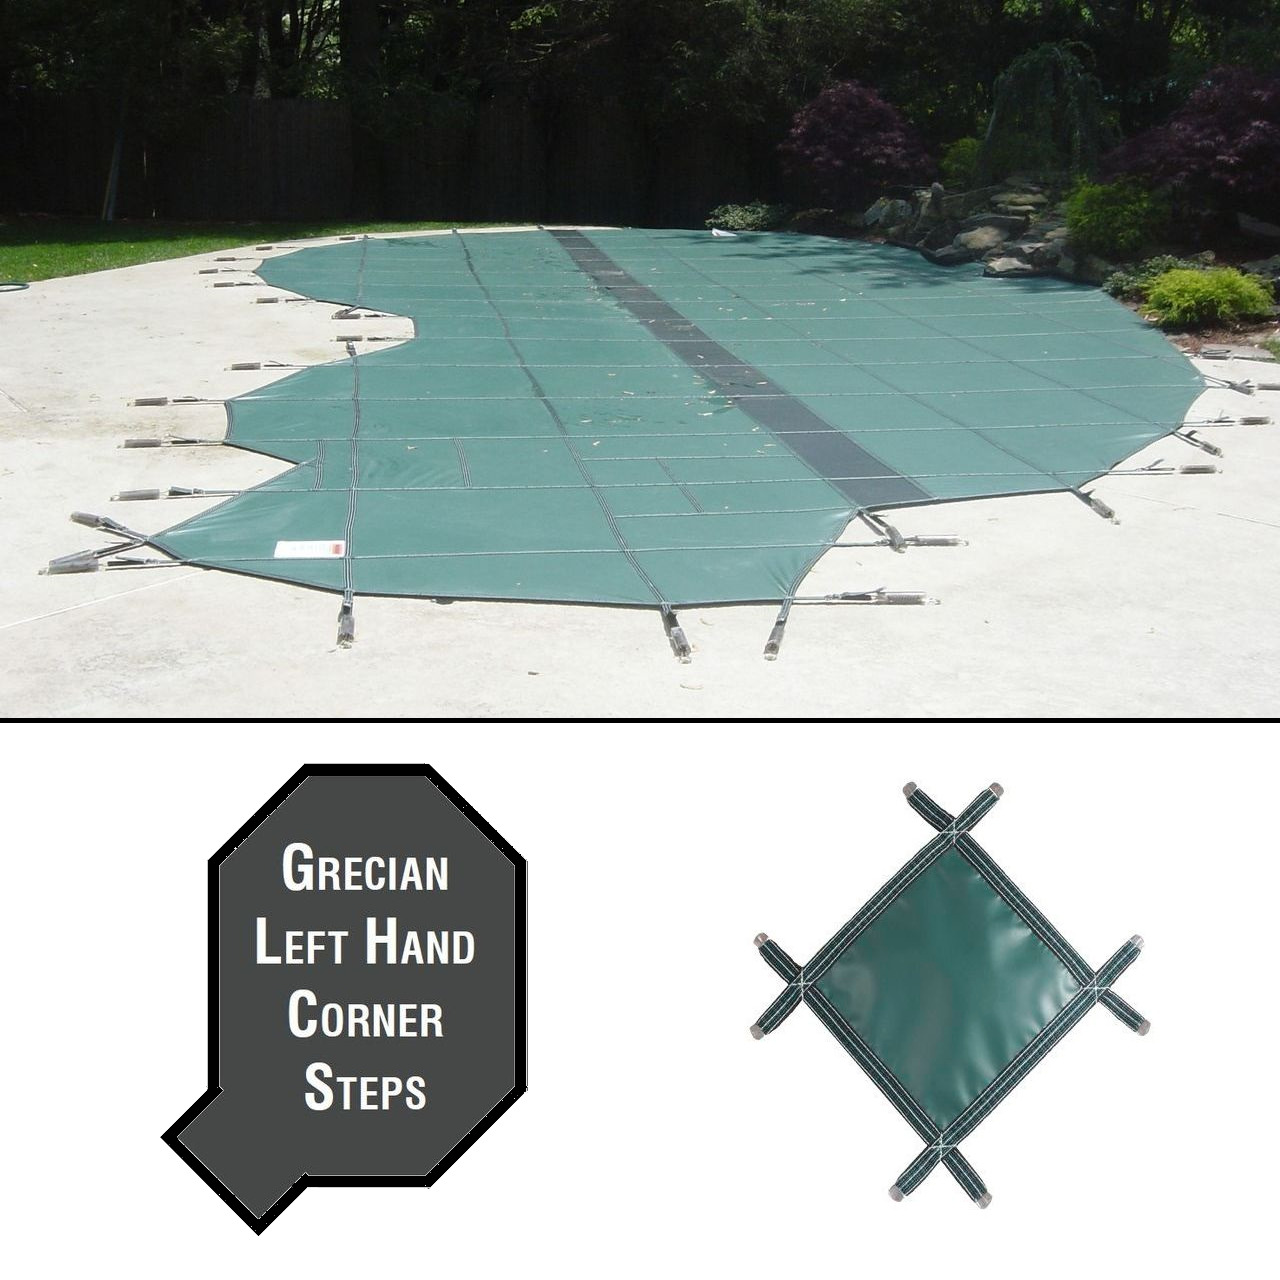 PermaGuard 23'x42' Grecian Pool Cover With 4'x11' Left Corner Steps